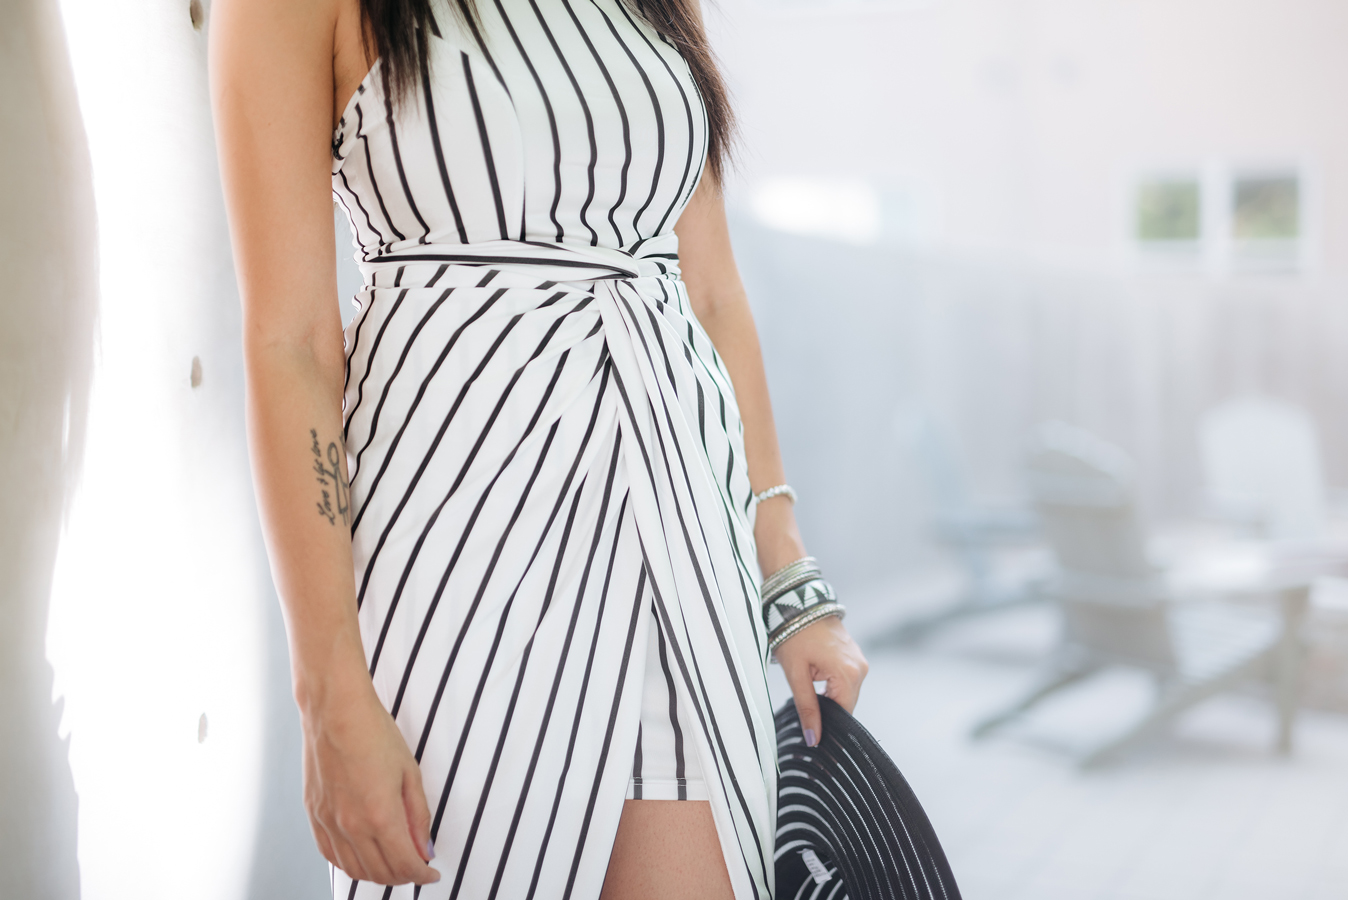 FTT-ZAFUL-BLACK-WHITE-STRIPES-SUMMER-CHIC-4